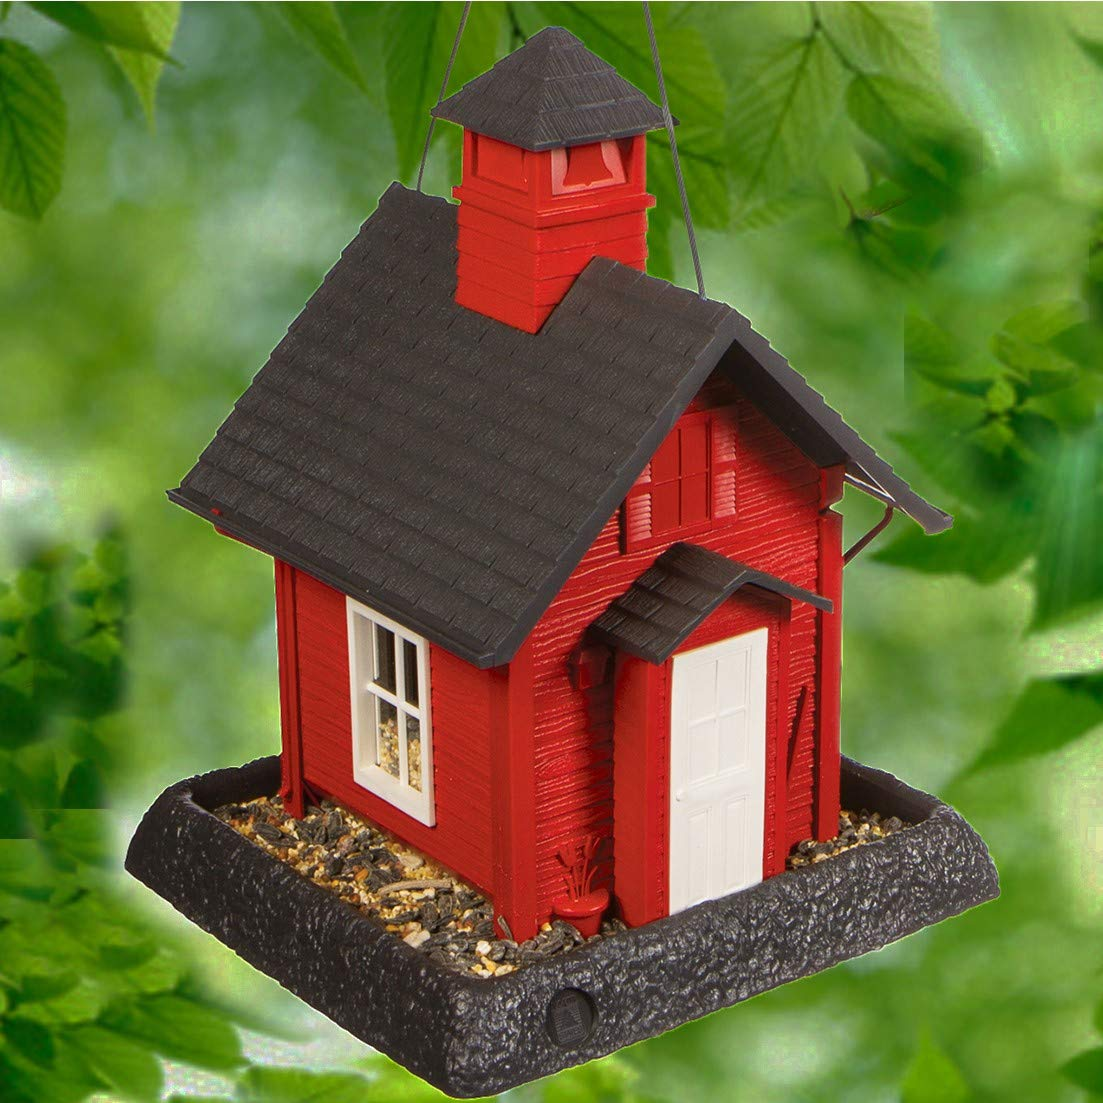 North States Village Collection School House Birdfeeder: Easy Fill and Clean. Squirrel Proof Hanging Cable included, or Pole Mount (pole sold separately). Large, 5 pound Seed Capacity (9.5 x 10.25 x 13.25, Red)